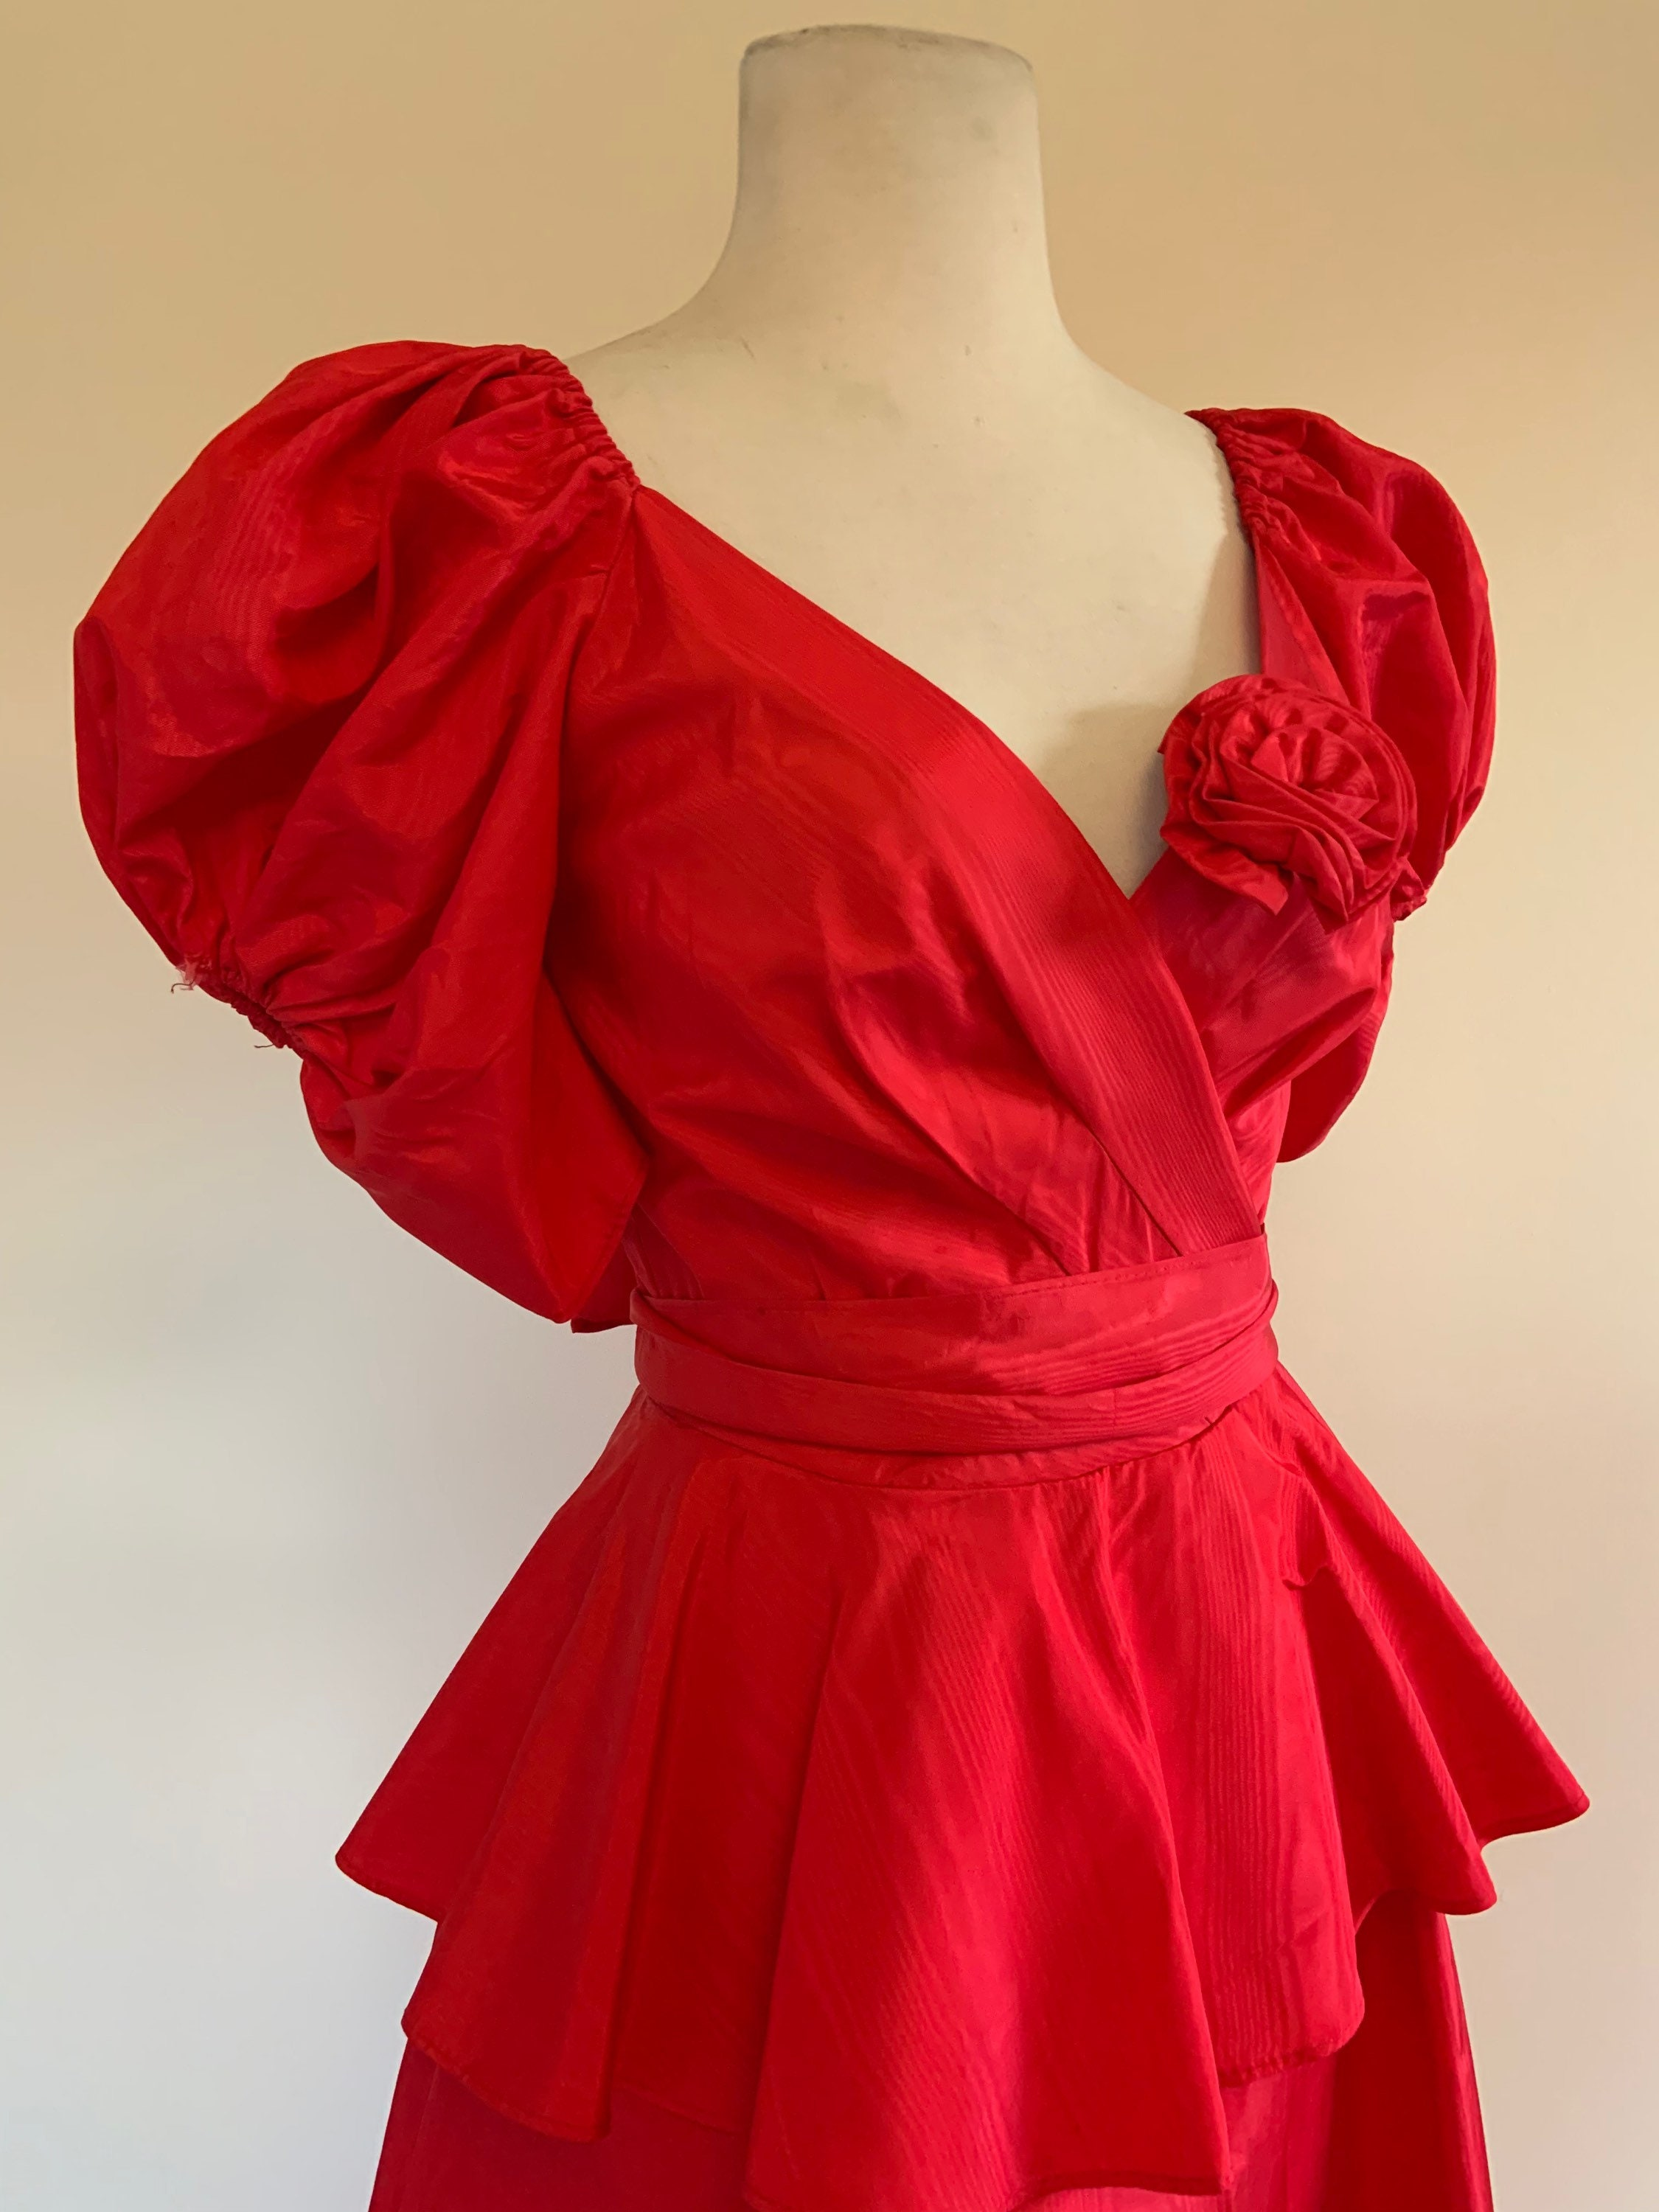 80s Dresses | Casual to Party Dresses Vintage 1980S Red Puffed Sleeve Peplum Dress80S Off Shoulder Cocktail $30.00 AT vintagedancer.com